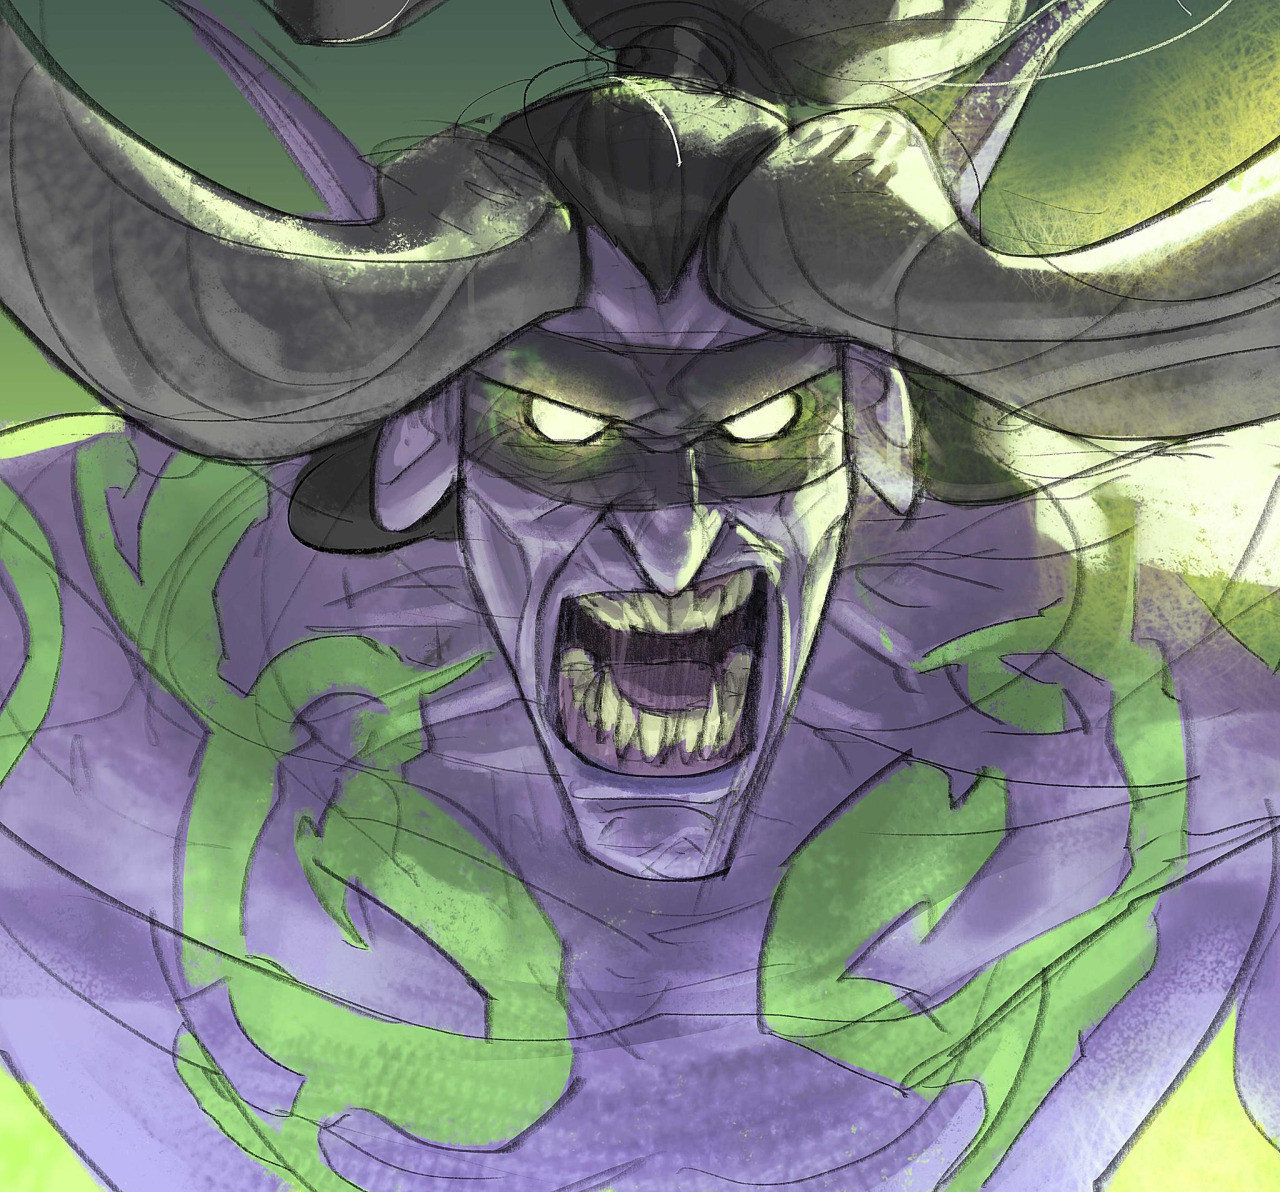 """Illidan Stormrage! :D :D Everytime I draw this kind of buddies I spend the whole process talking with this deep voice and saying random things like """"when I finish this line! YOUR SOUL WILL BE MINE!!' XD"""